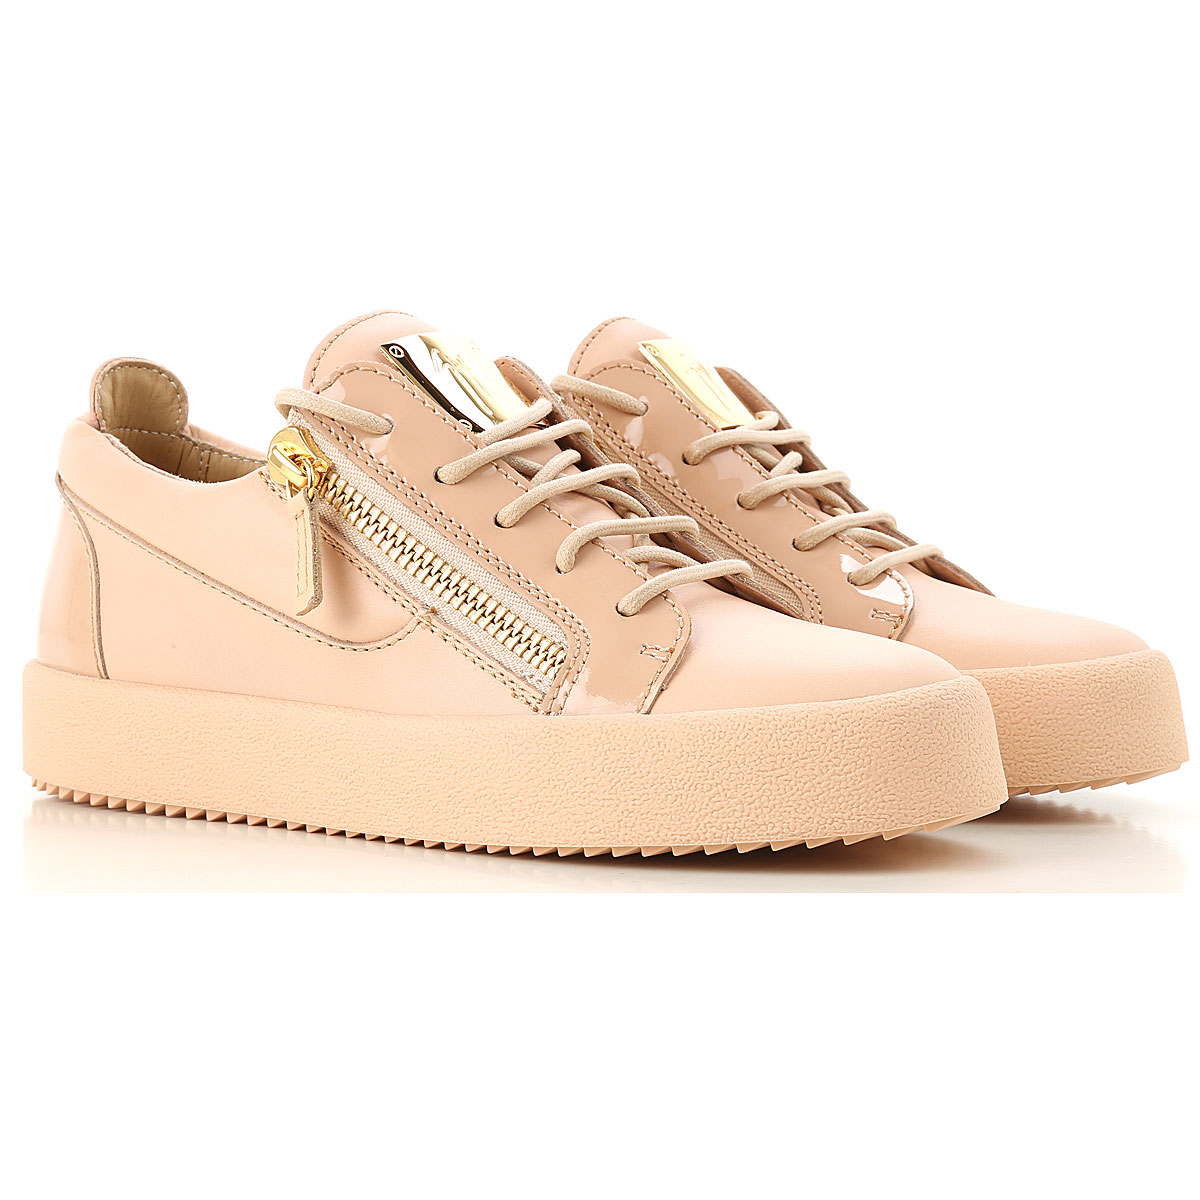 Giuseppe Zanotti Design Sneakers for Women On Sale in Outlet, Nude Pink, Leather, 2019, 10 5 6